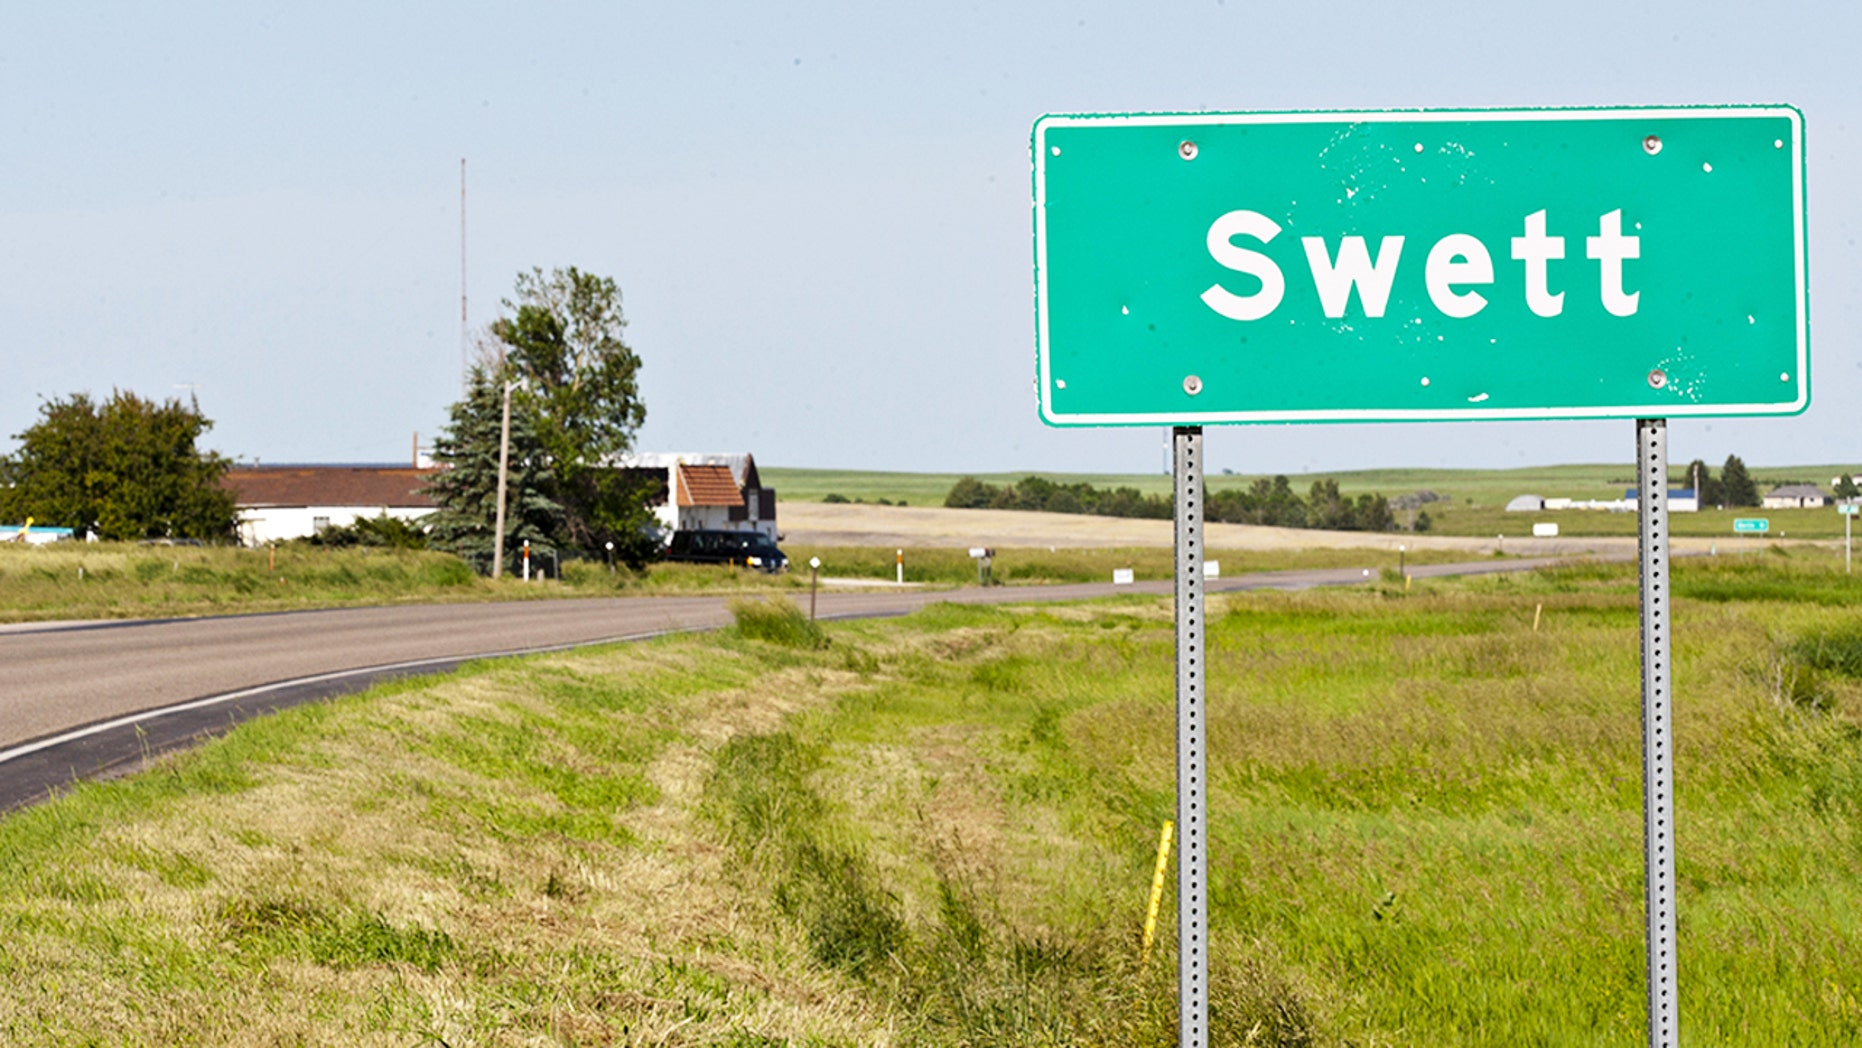 The town of Swett, South Dakota can be yours for a quarter million.